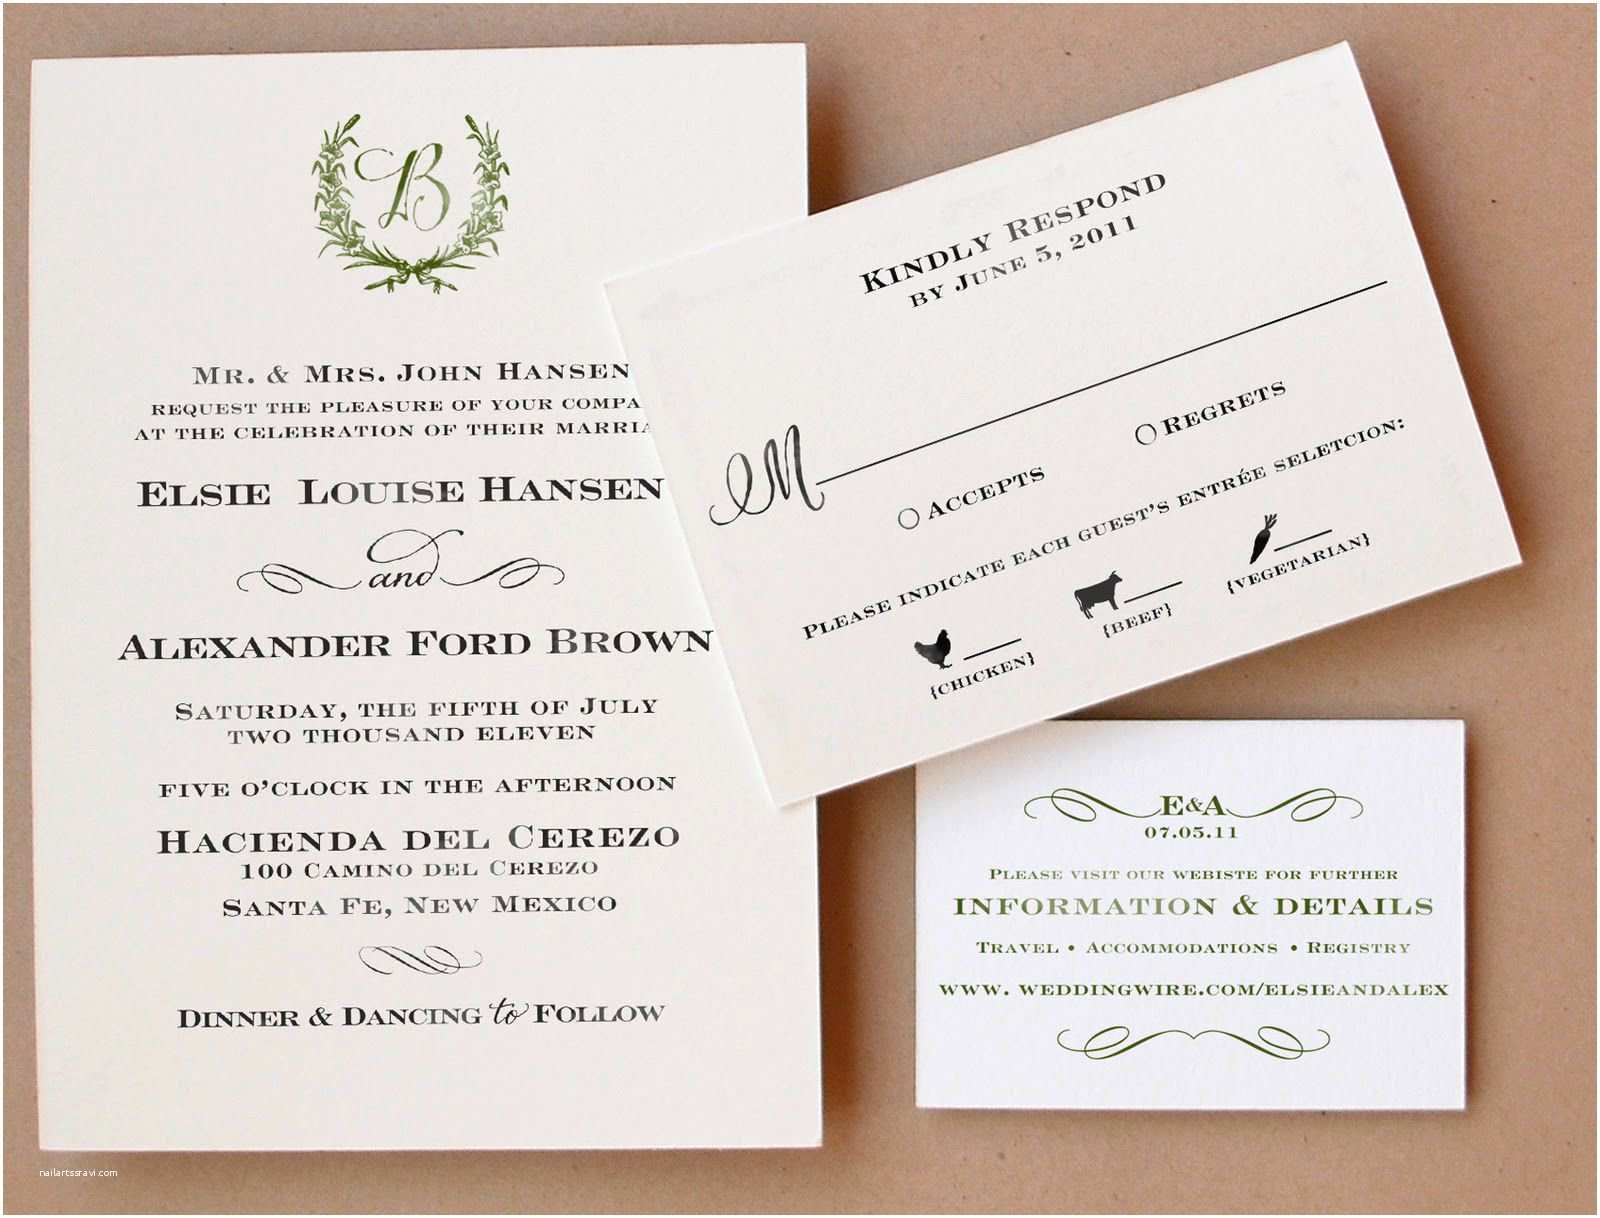 Wedding Invitations and Response Cards All In One Wedding Invitation Wedding Invitations Reply Cards New